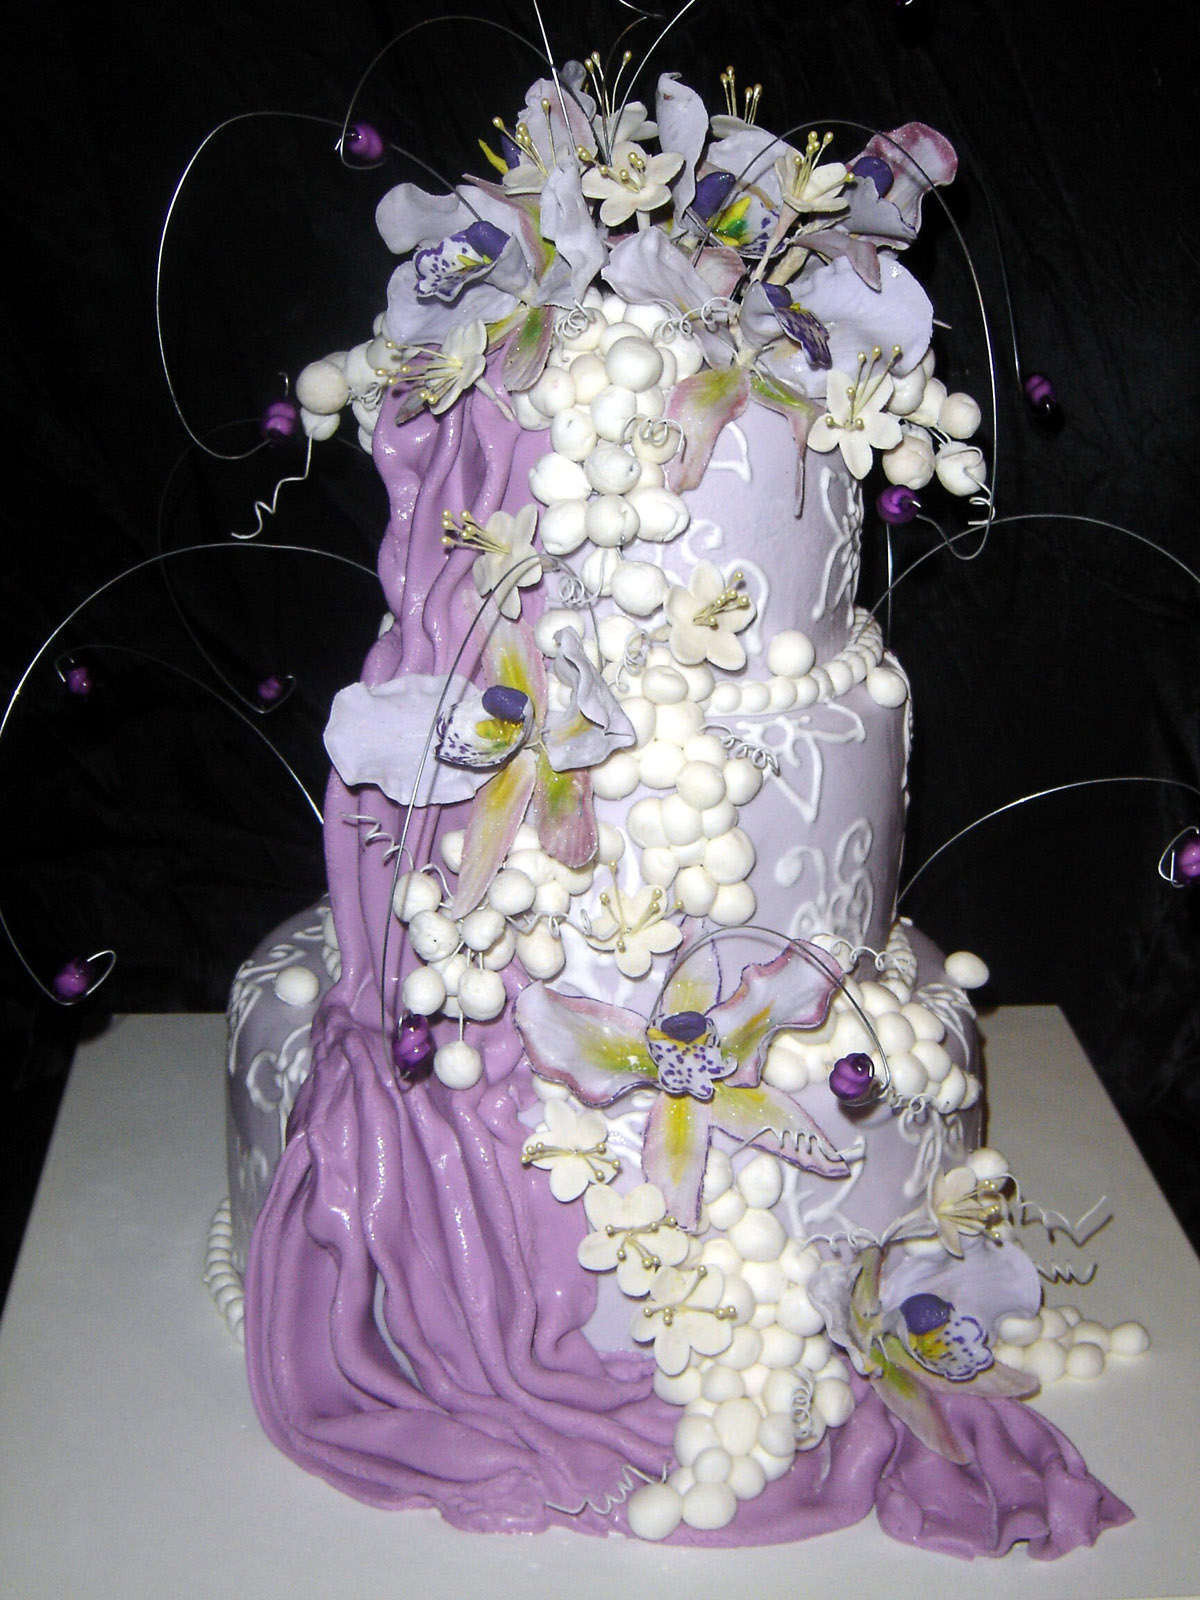 Unique Wedding Cakes  Unique Wedding Cakes Be Different on Your Special Day